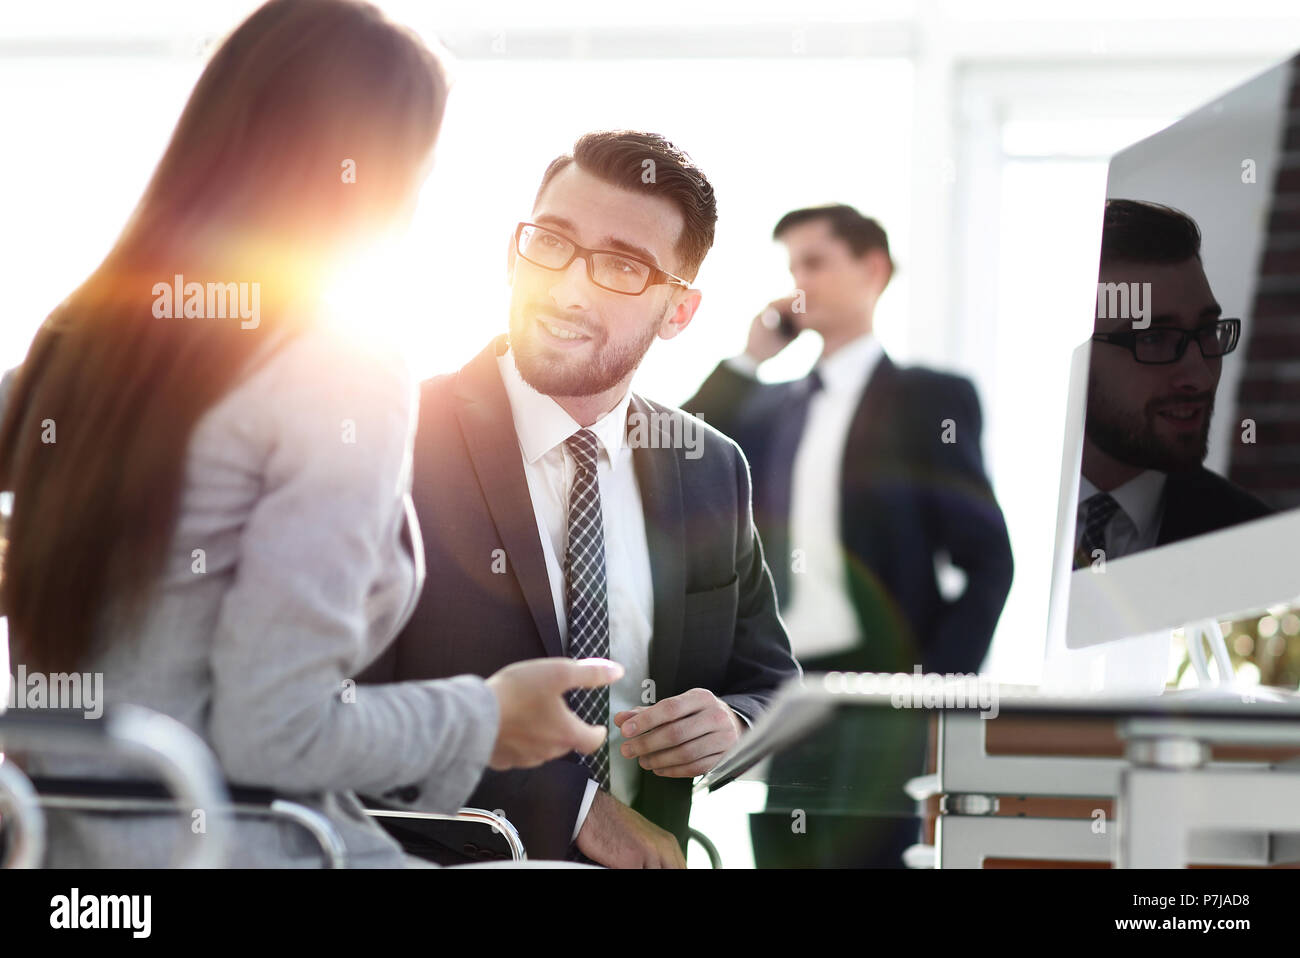 Confident man talking to his interviewer during a job interview - Stock Image